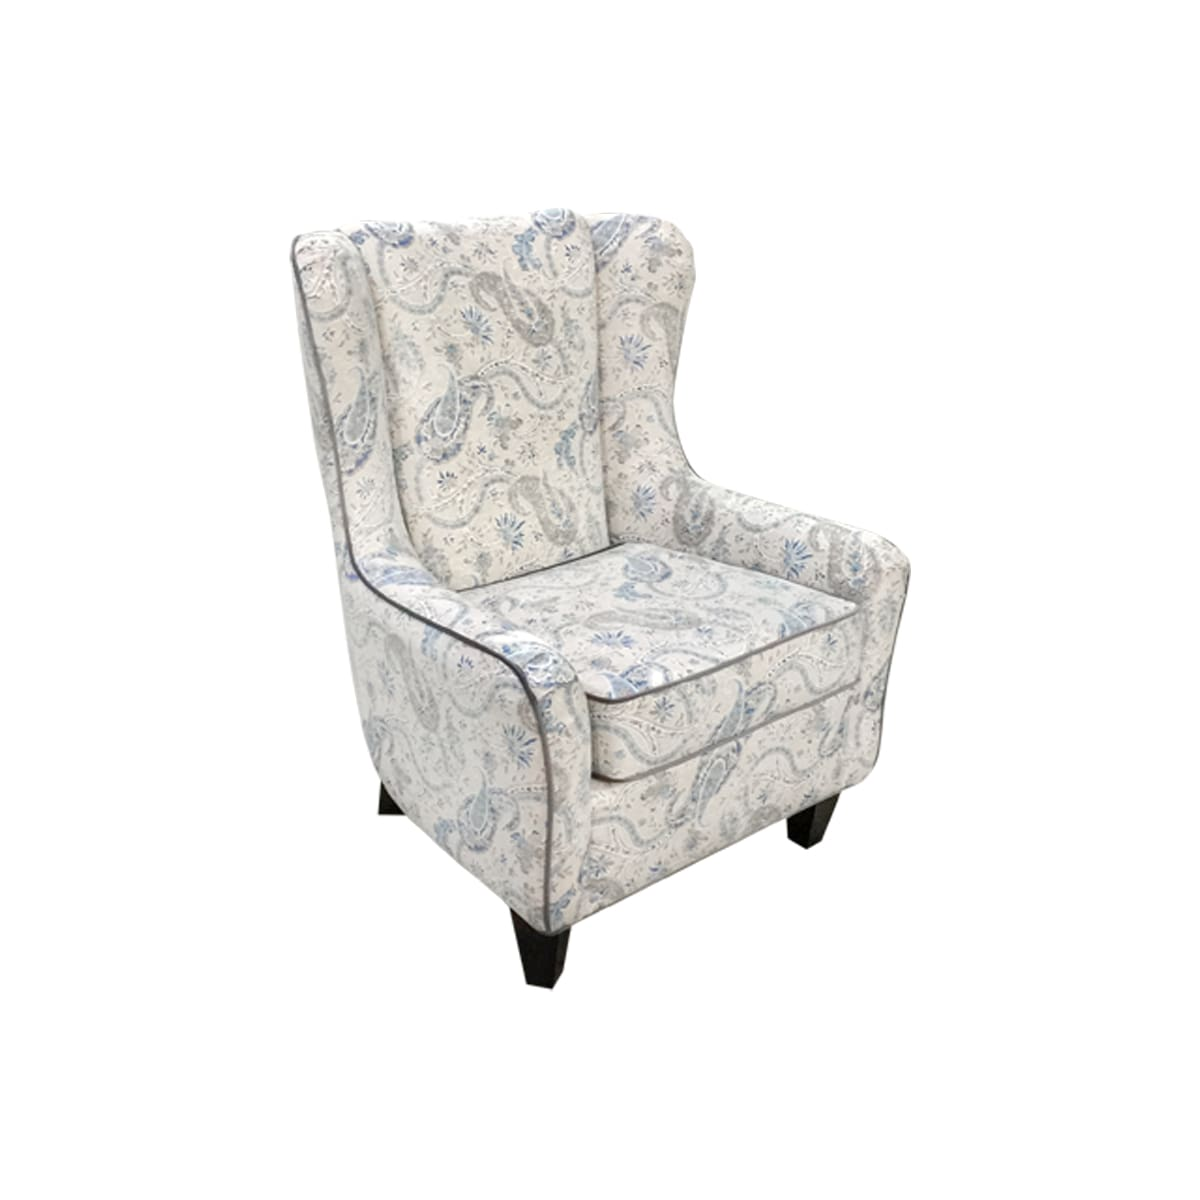 Cali Chair - accent chairs